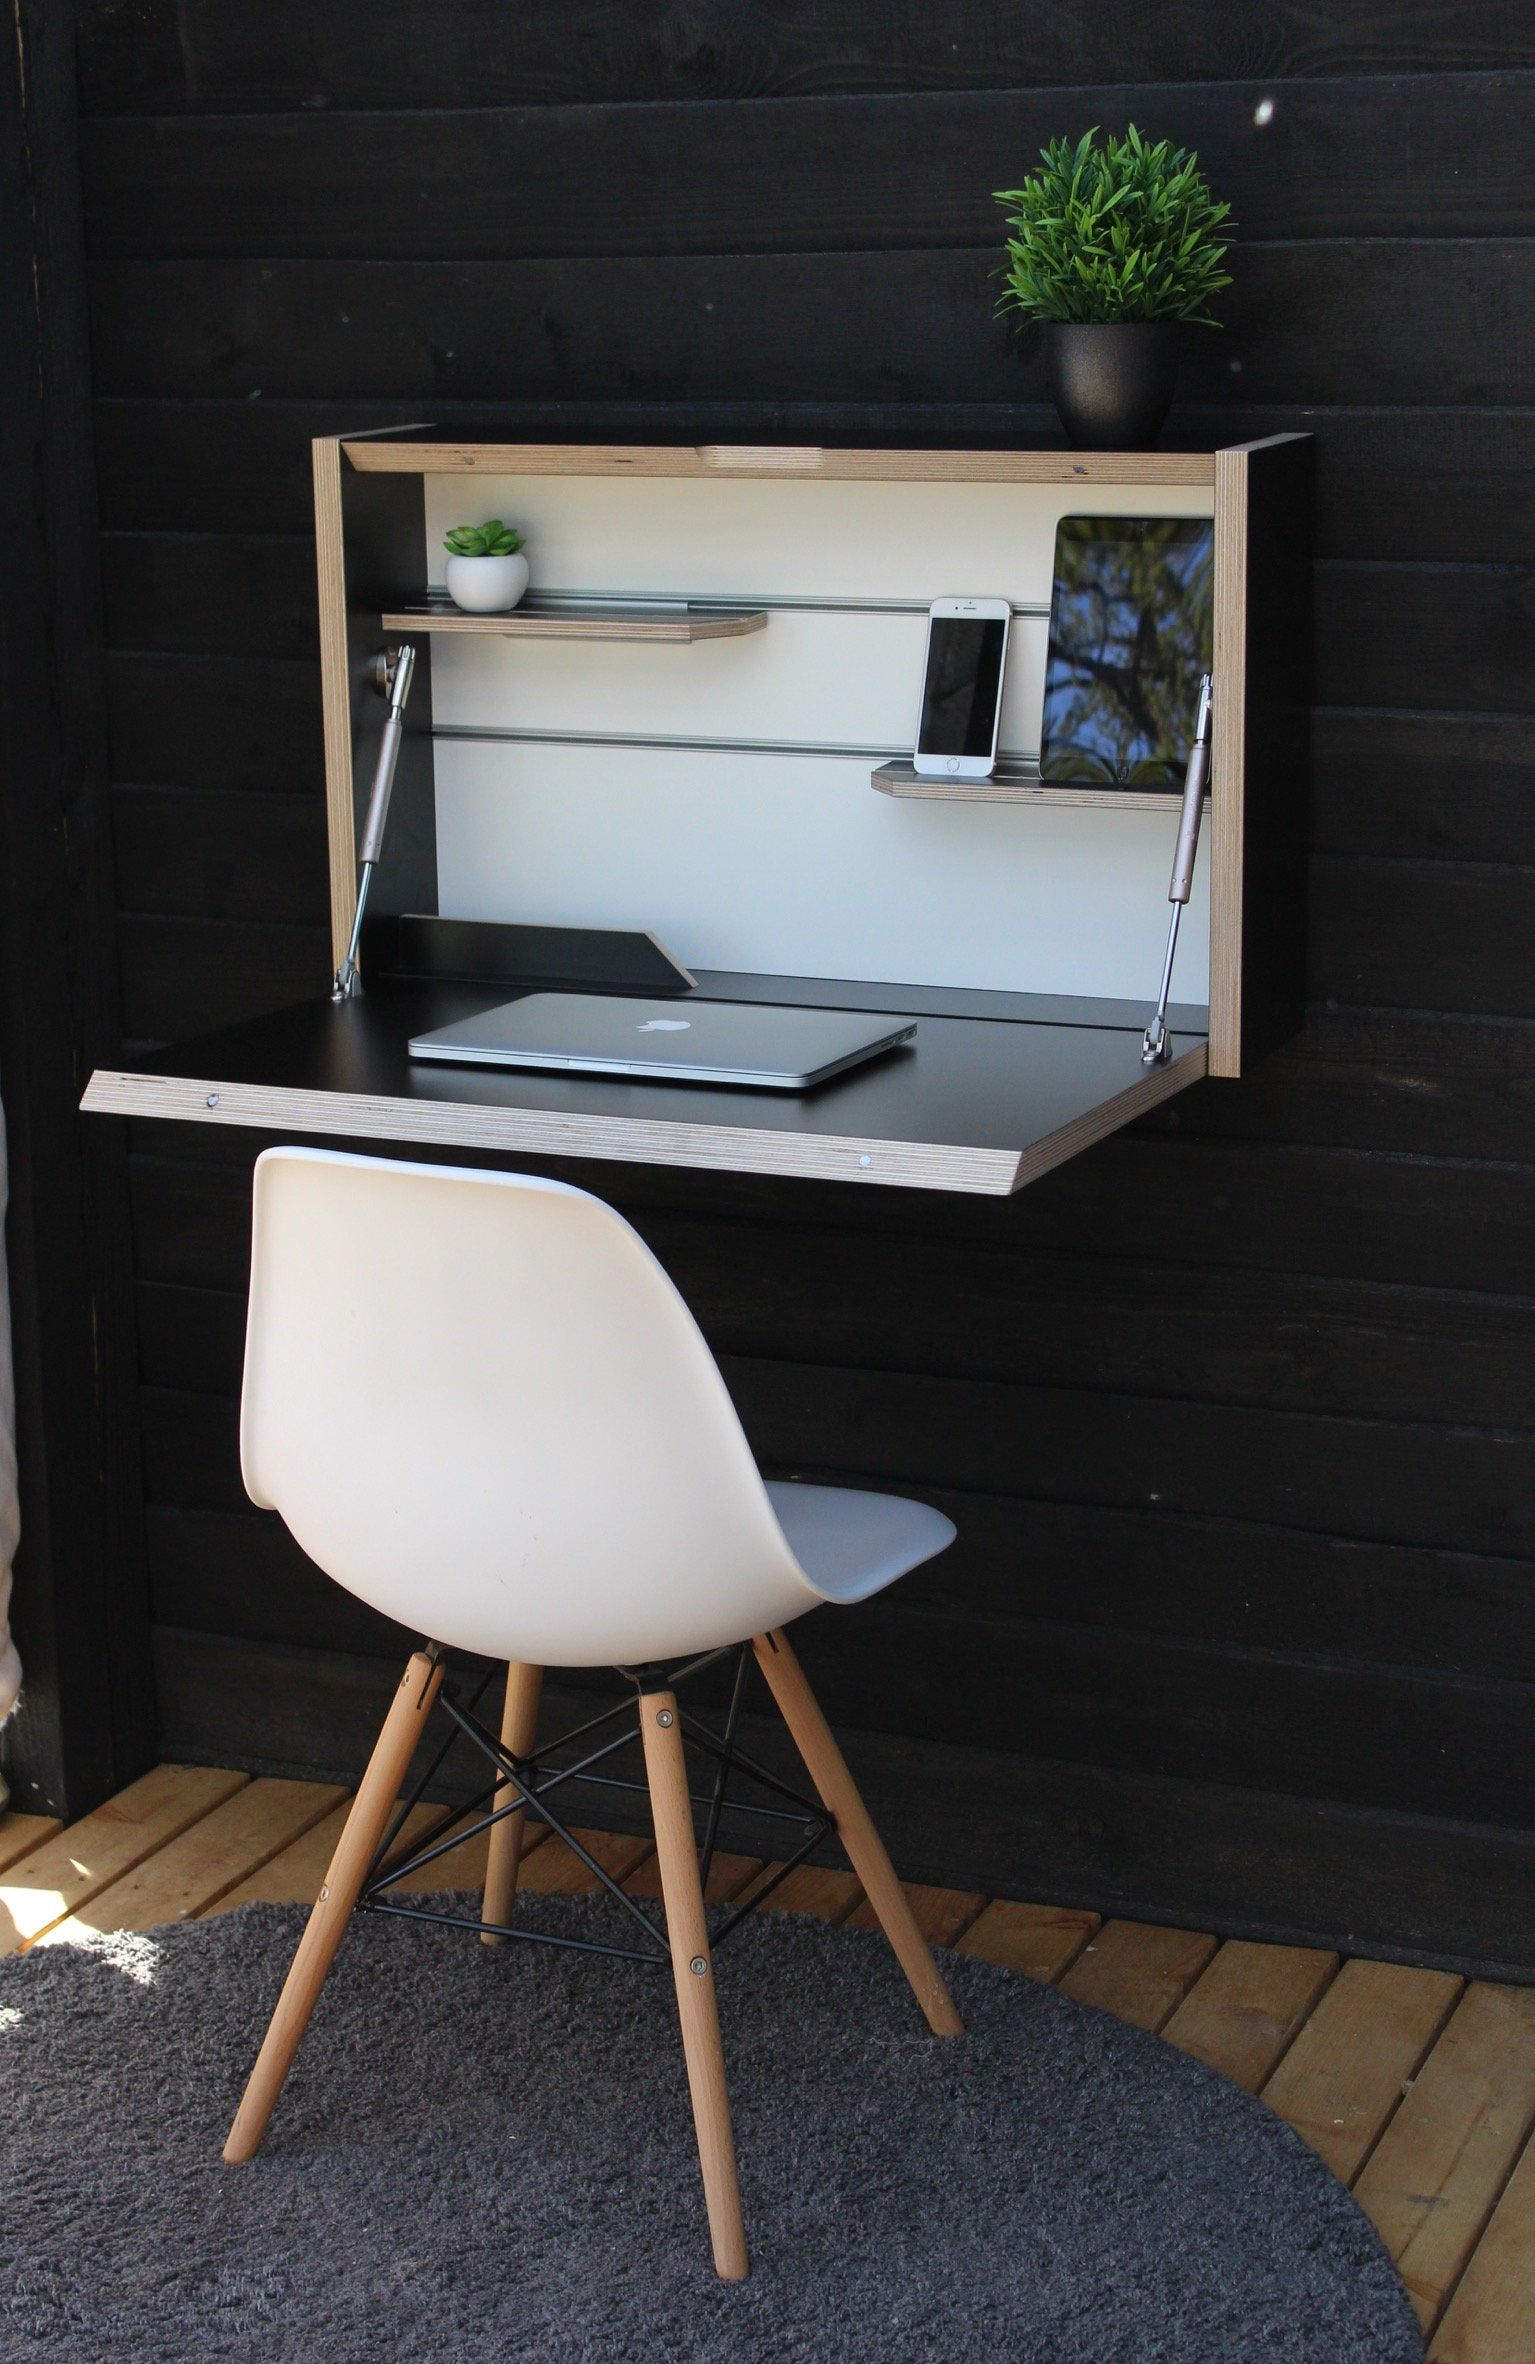 Floating Desk. Office Desk. Plywood Table. Wall Mounted Folding